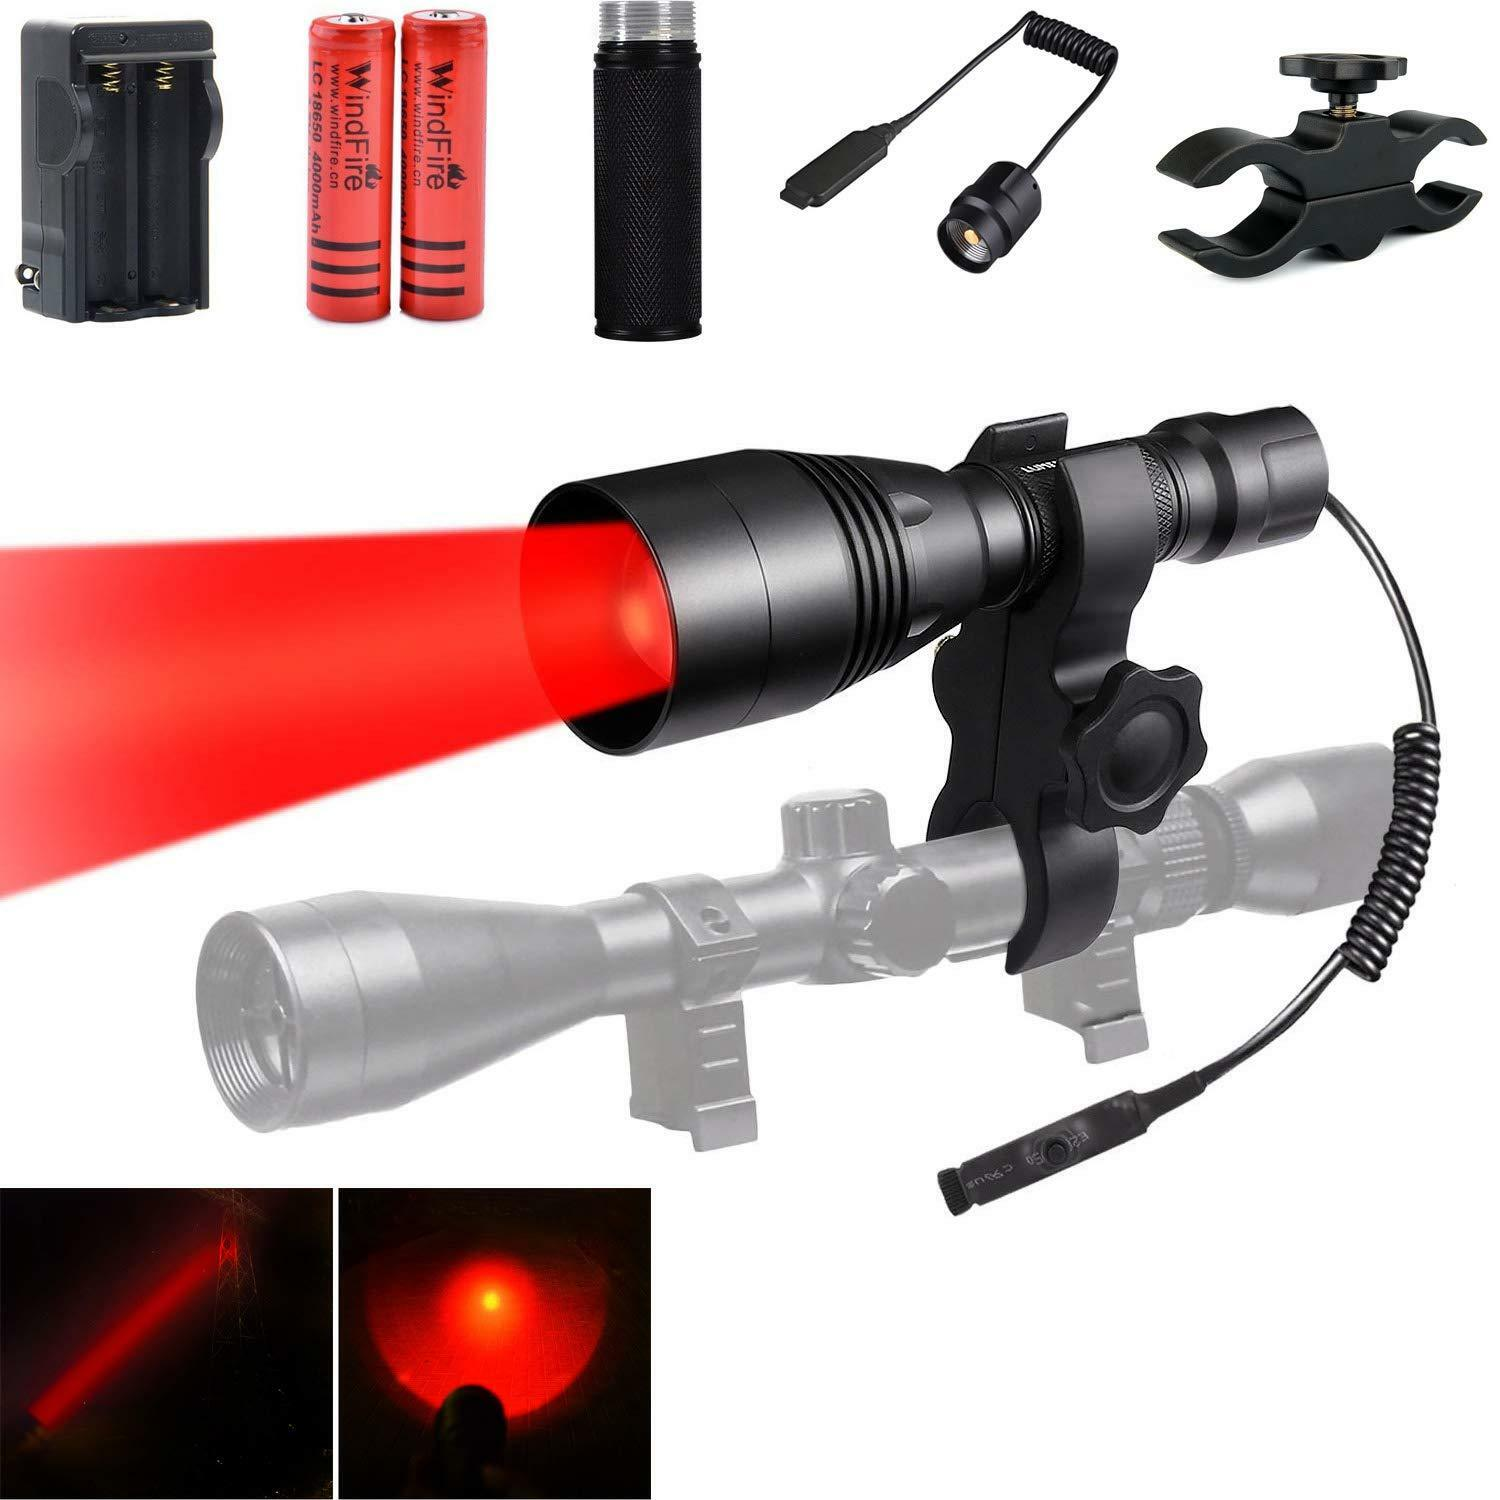 WindFire Tactical Red  LED Hunting Flashlight Zoomable Torch with Extension Tube  buy brand